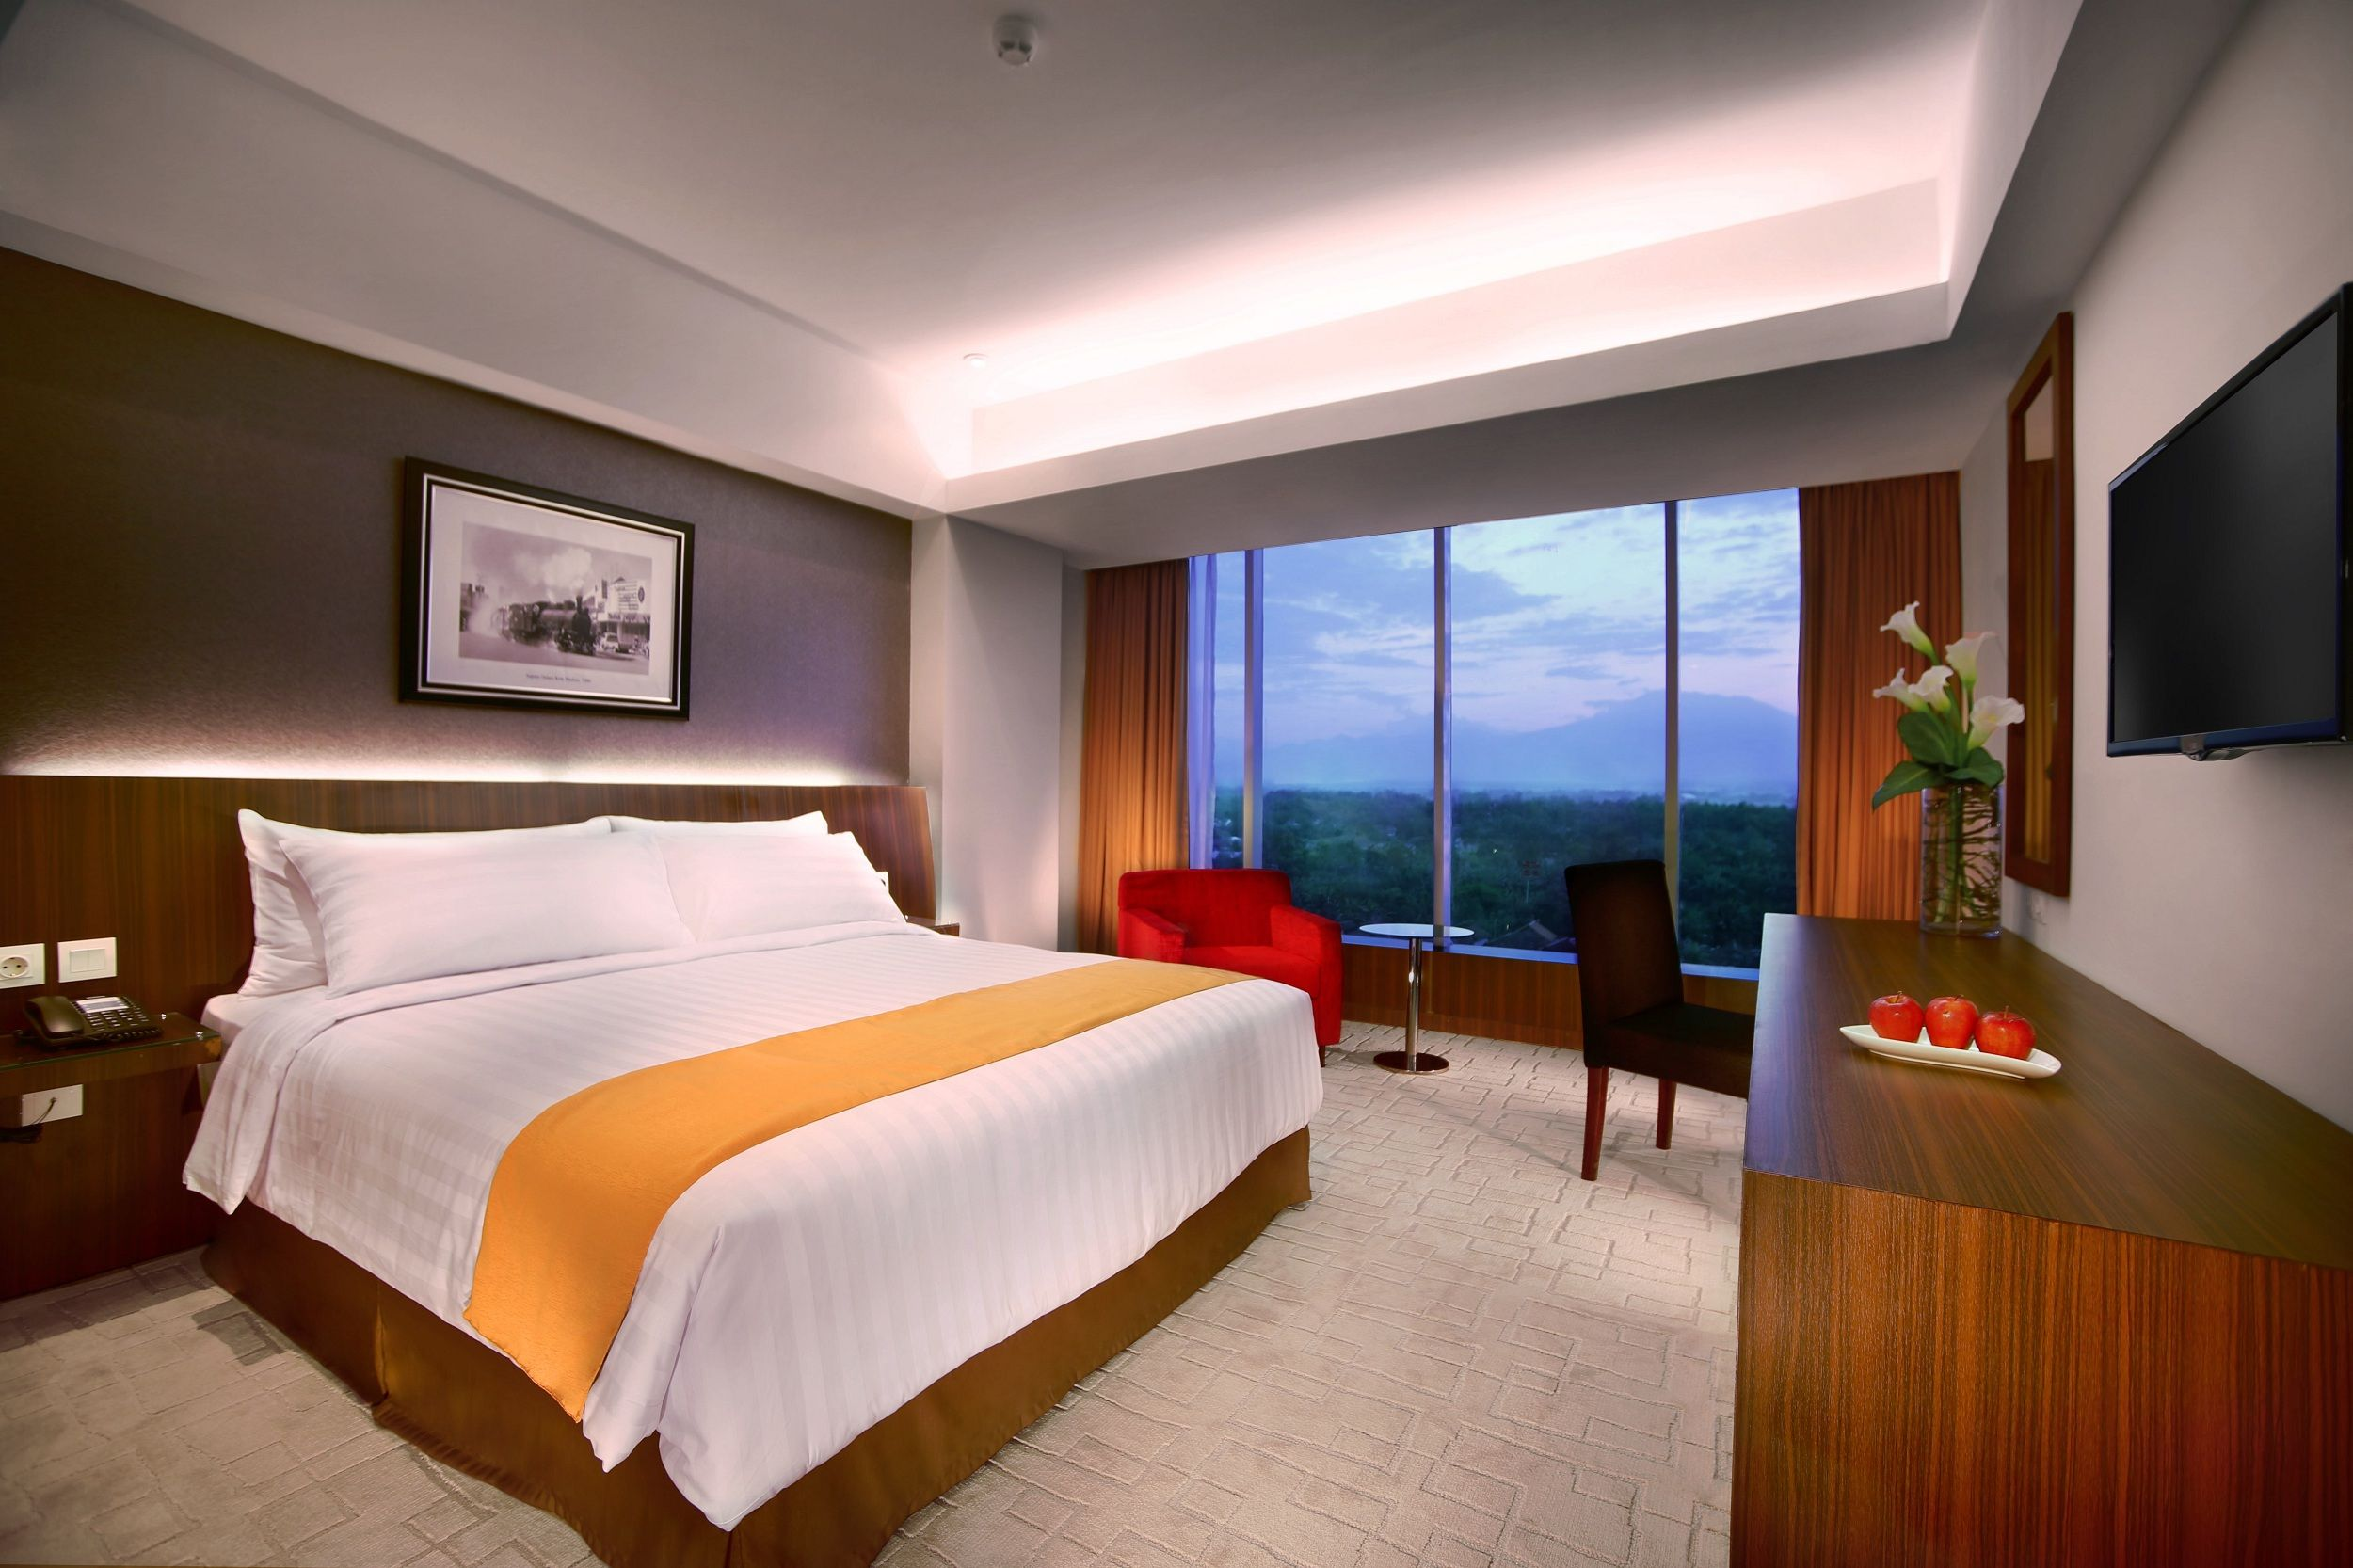 Aston Madiun Hotel & Conference Center, Madiun